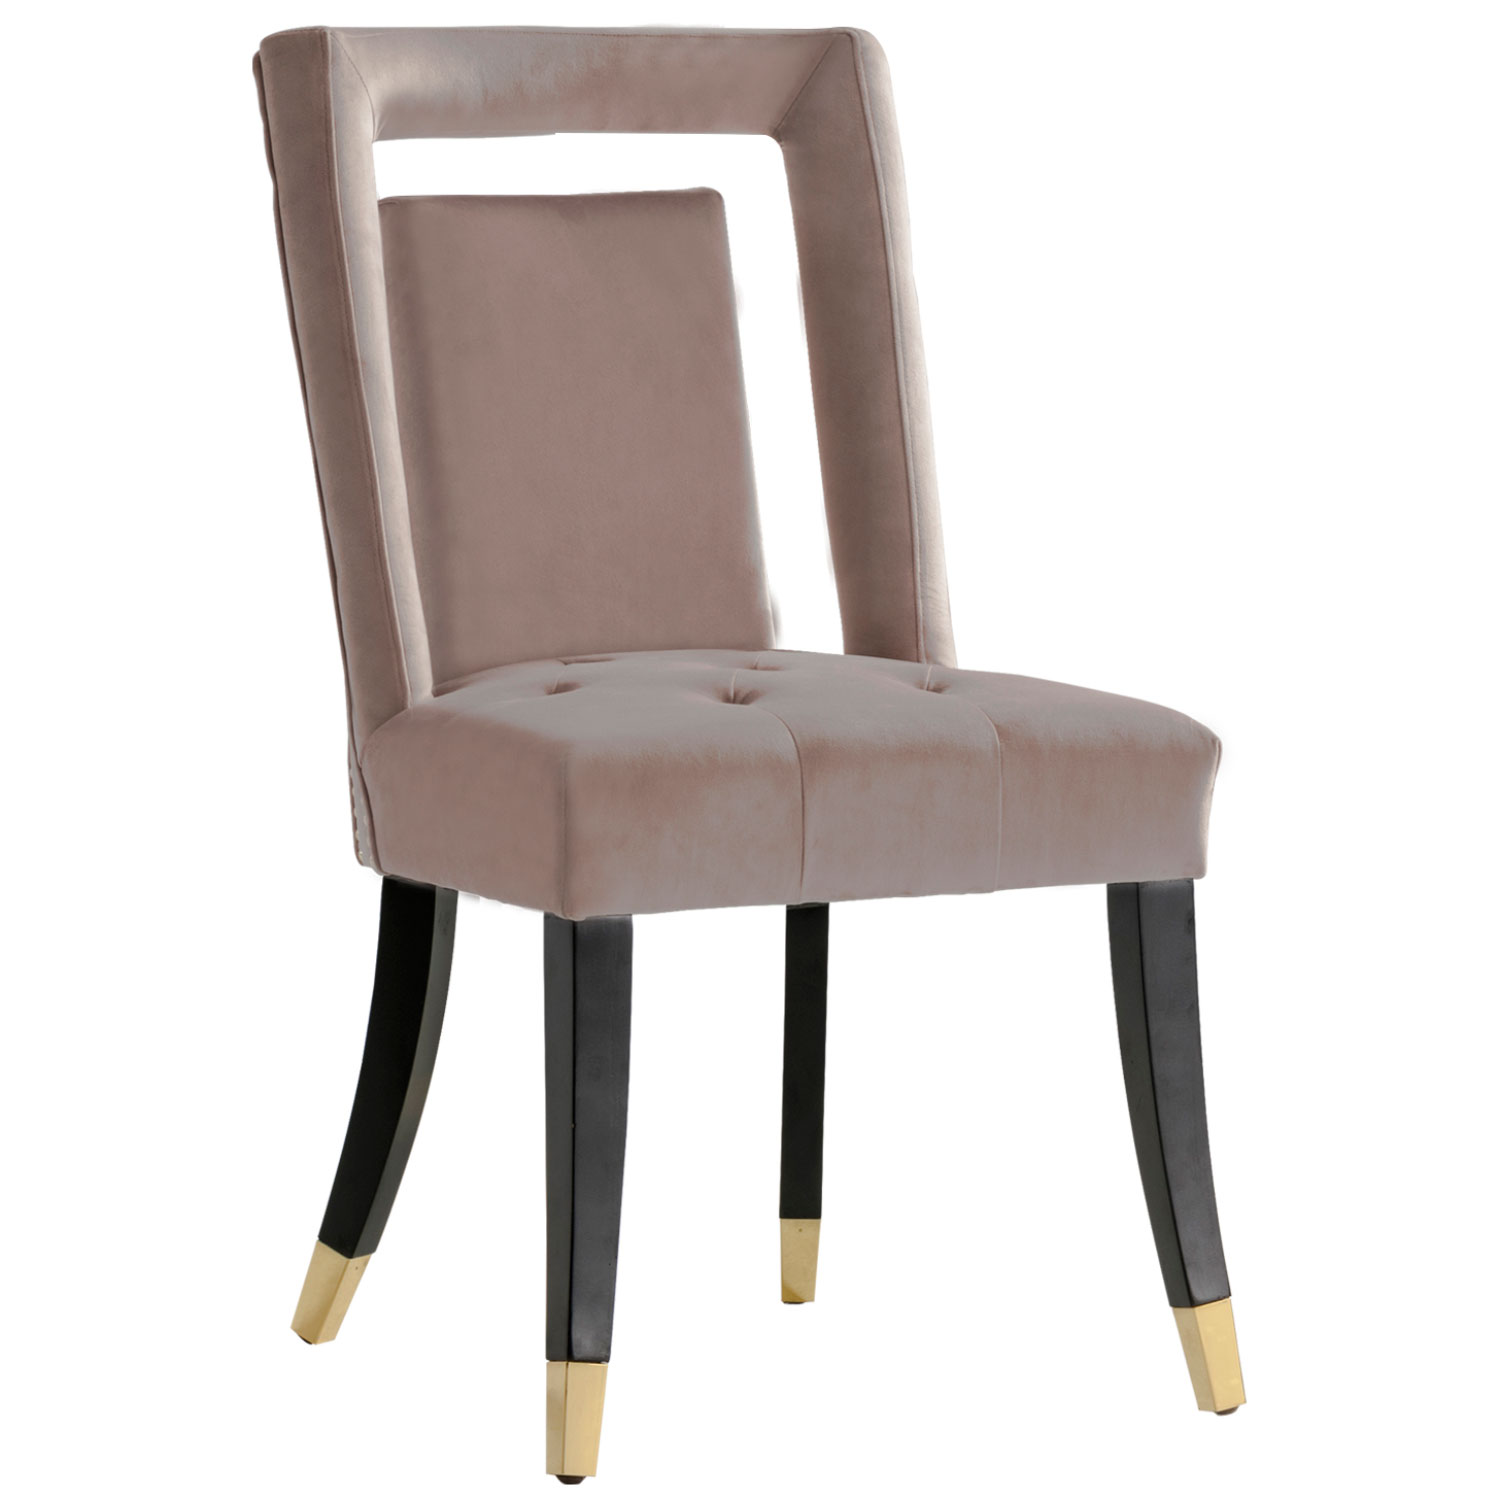 Chic Iconic Fdc9504 Dr Elsie Dining Chair In Blush Velvet Set Of 2